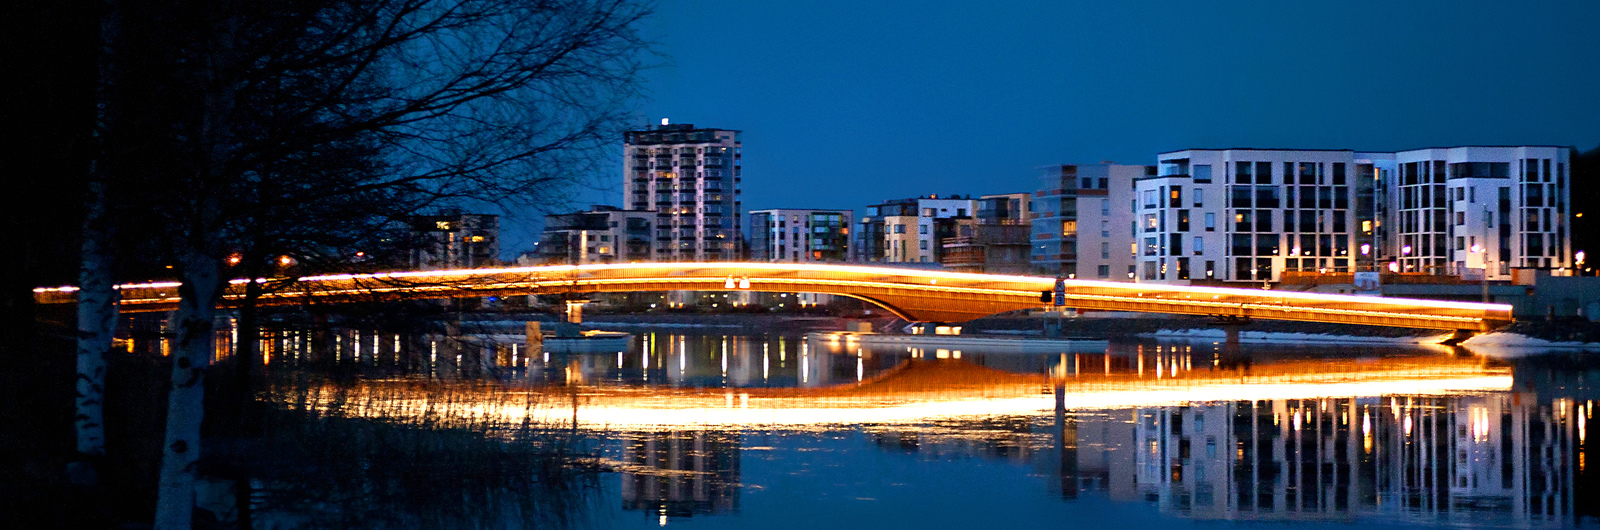 joensuu city header